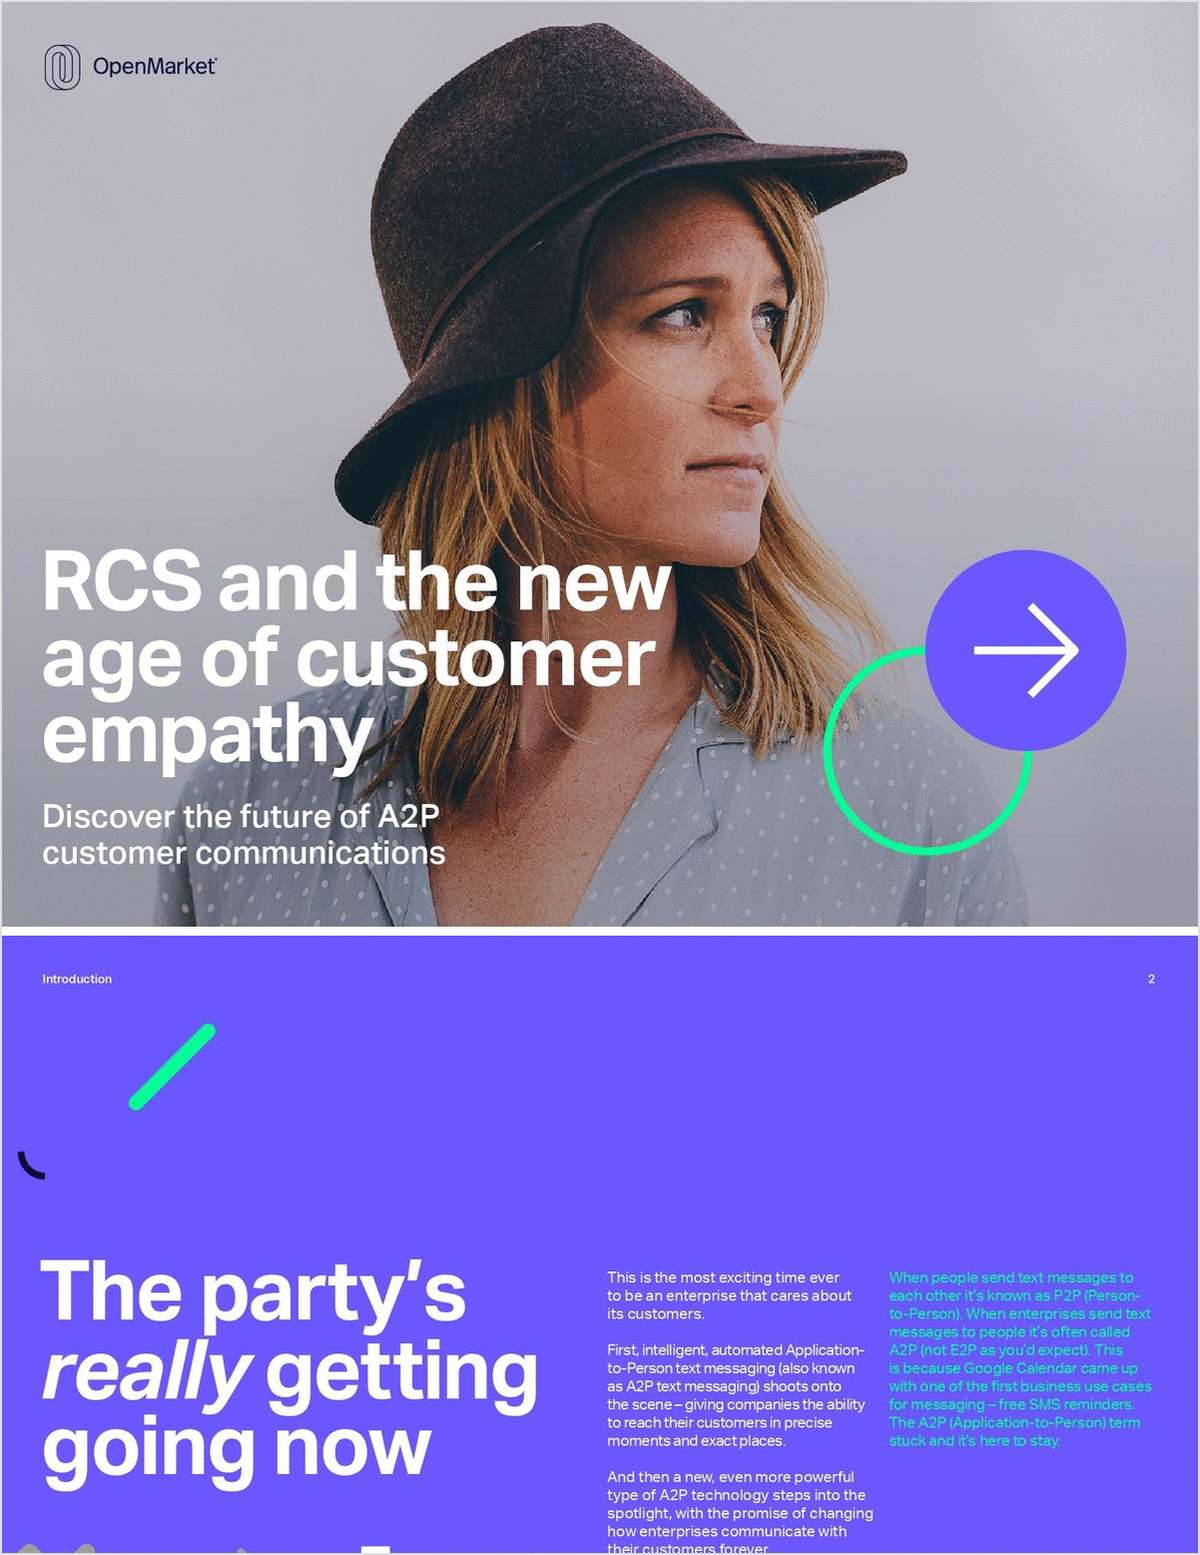 RCS and the New Age of Customer Empathy